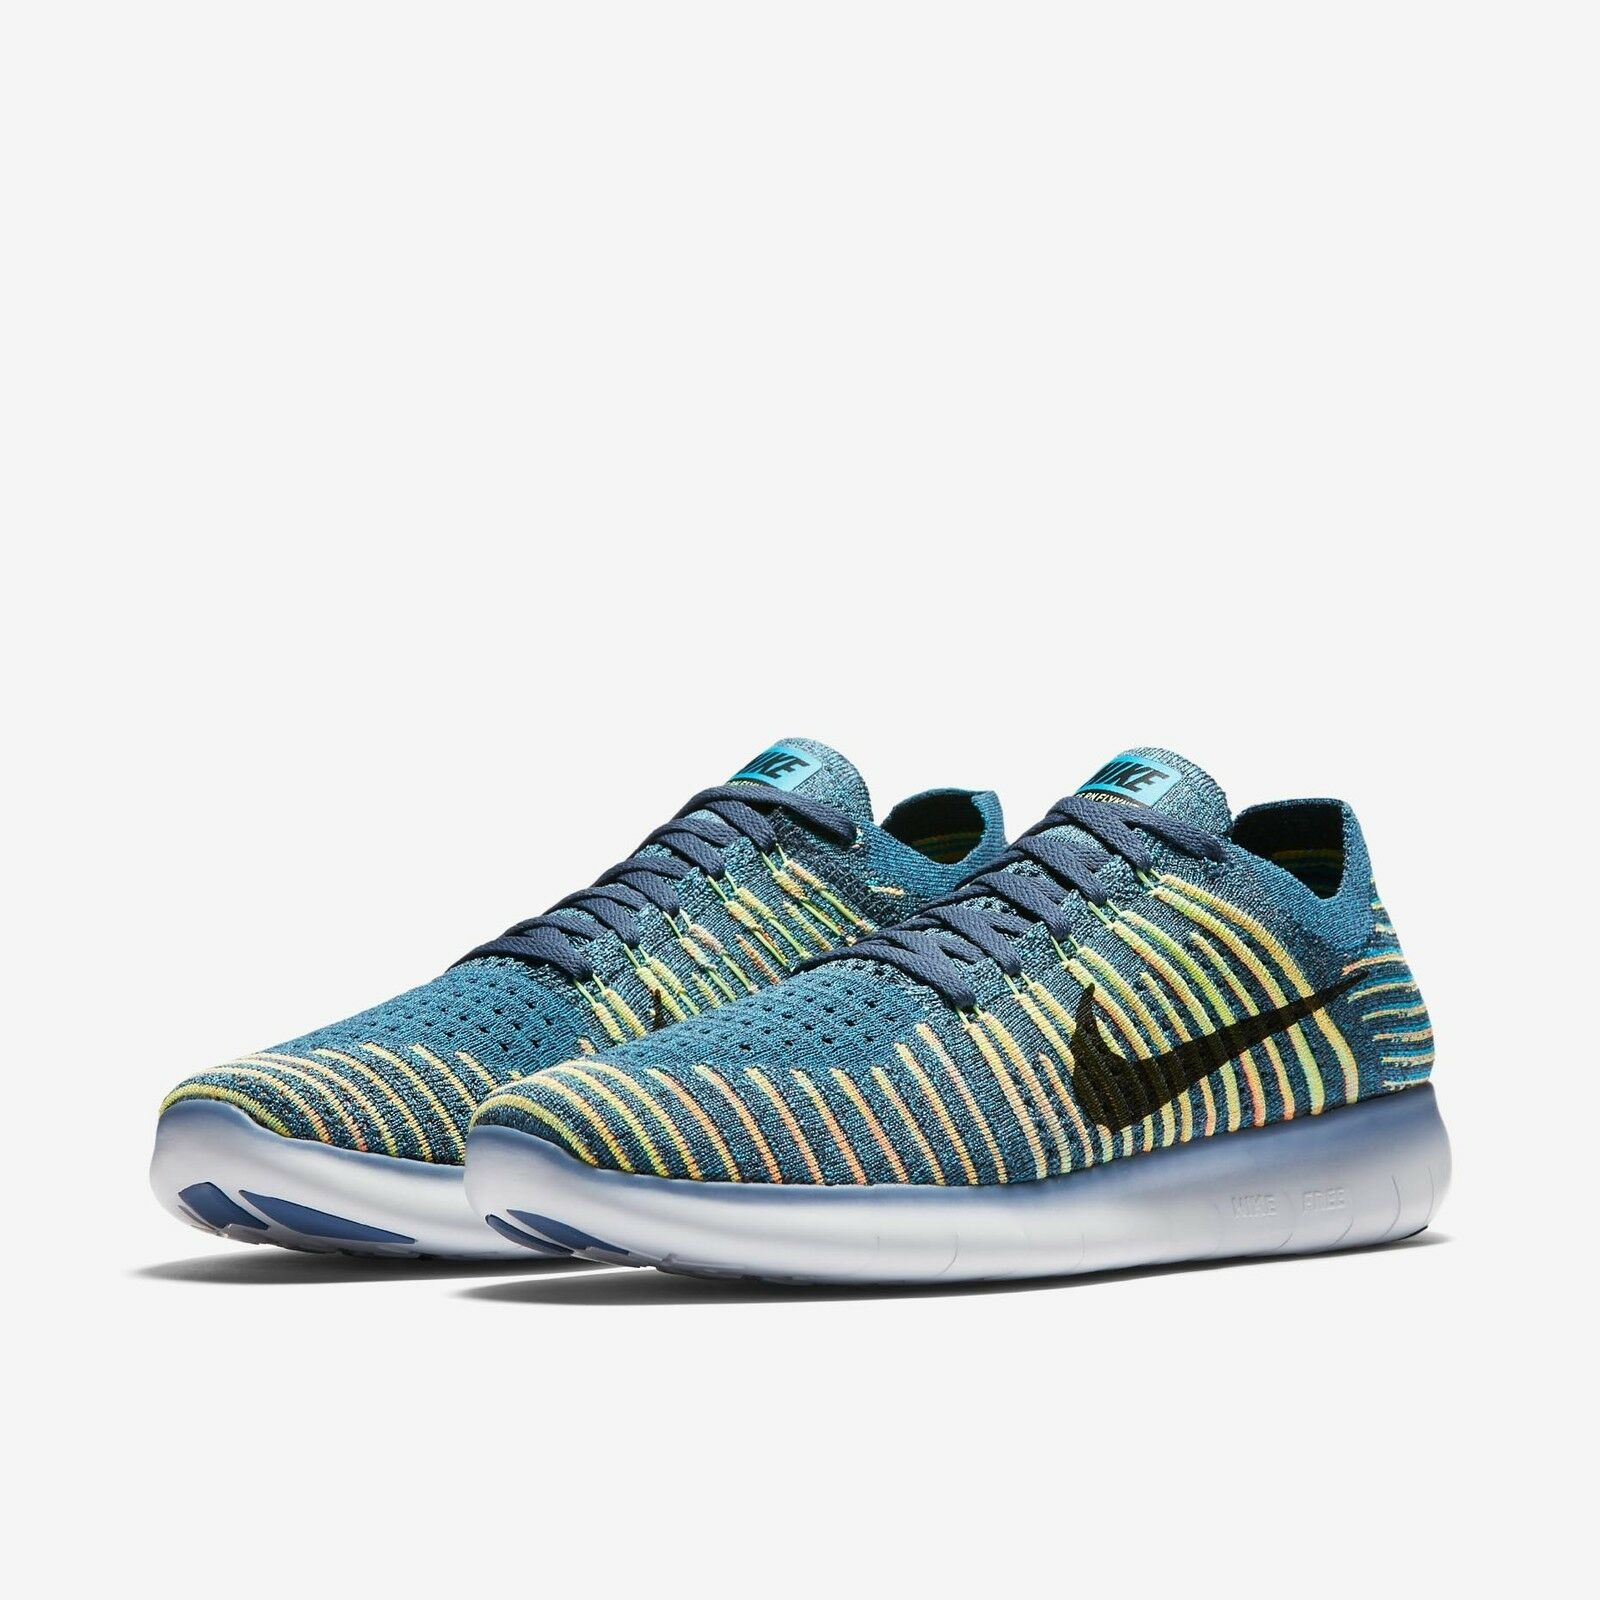 Nike Free Run RN Flyknit Men Squadron/Green/Blue Lagoon/Black 831069-407 Size 7